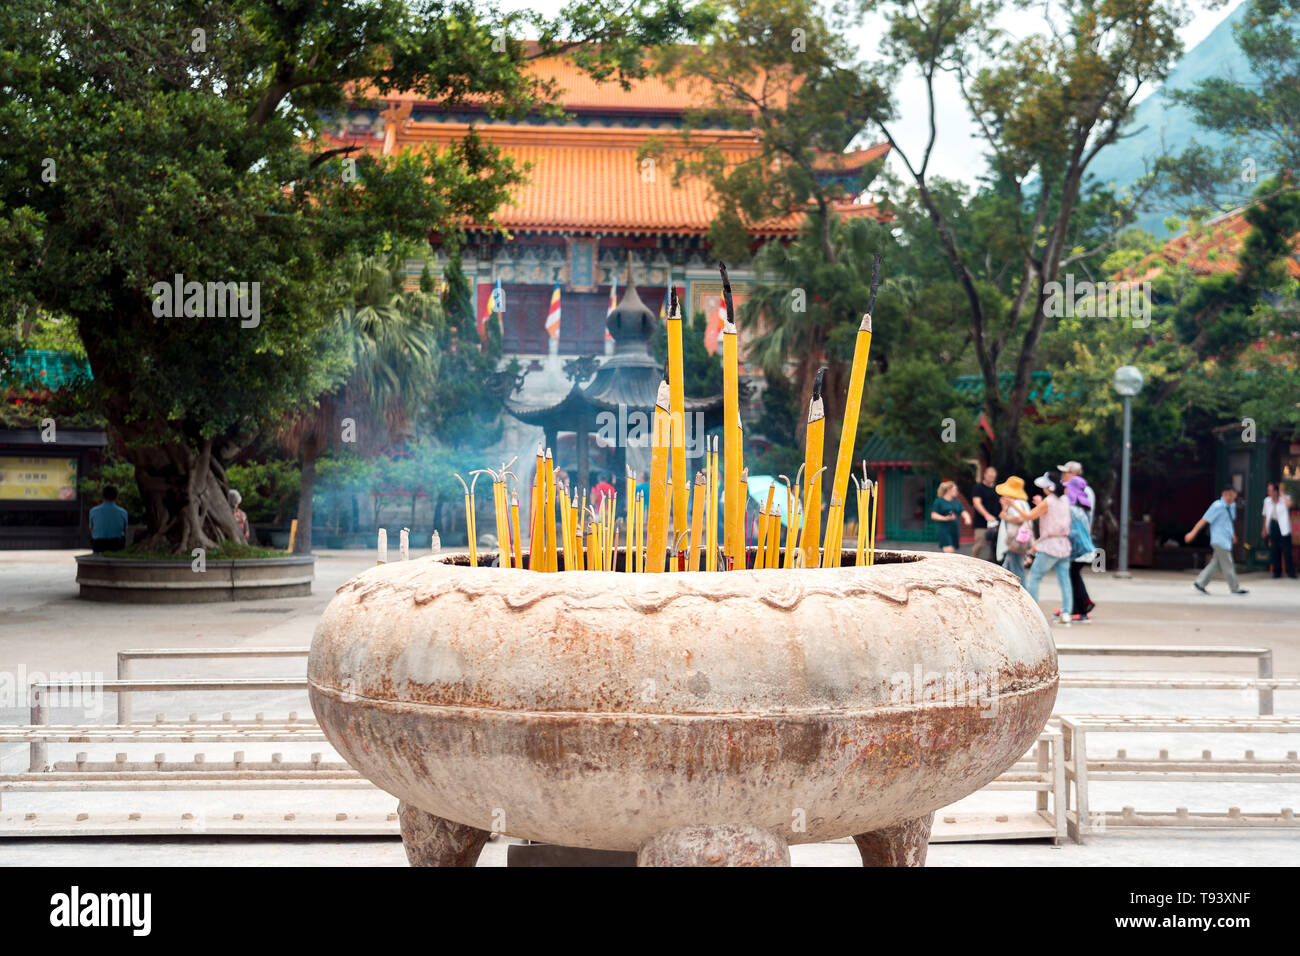 Traditional smoking candles in front of the Chinese monastery in Hong Kong - Stock Image